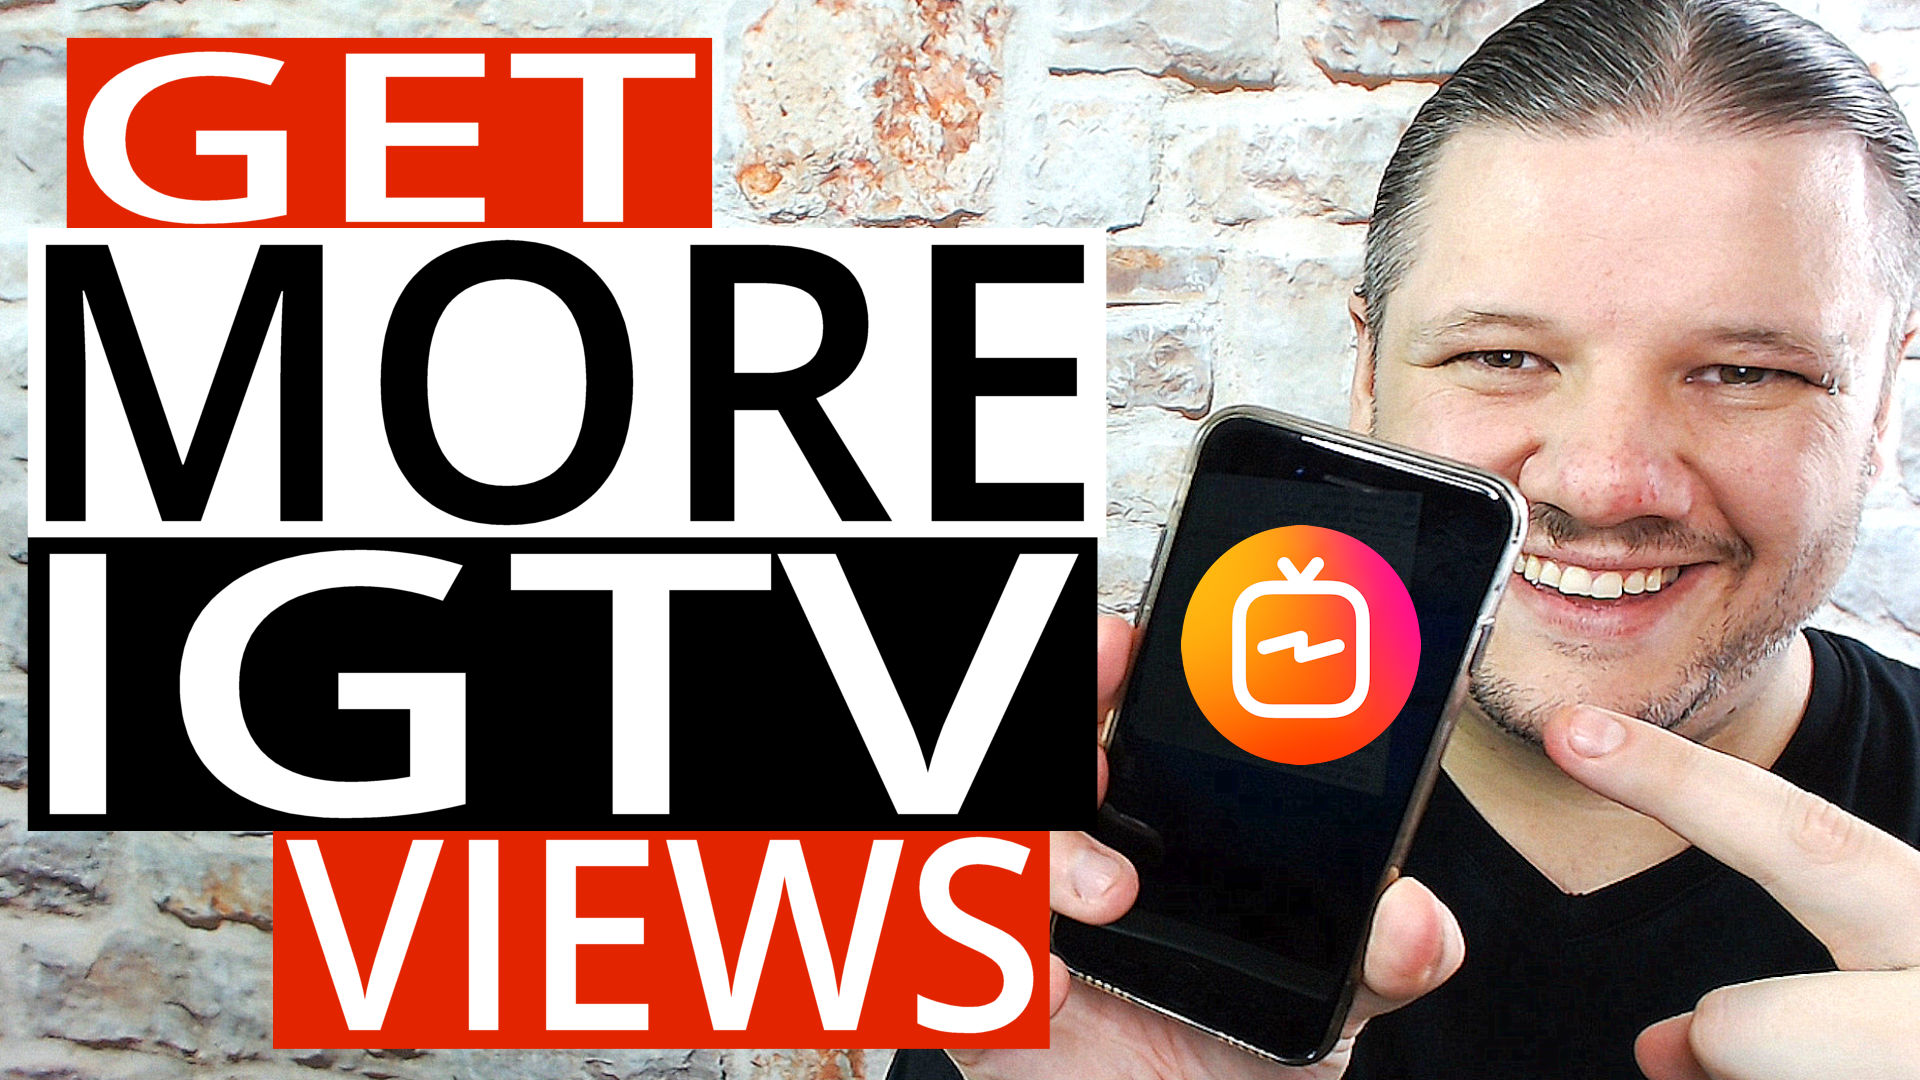 How To Get More Views on Instagram,How To Get More Views on Instagram TV,How To Get More Views on IGTV,how to get more views on ig tv,instagram tutorial,instagram igtv,igtv instagram,instagram videos,get more views instagram,get more views igtv,instagram views,igtv views,get more views ig tv,how to get more views igtv,get instagram views,get igtv views,instagram video,igtv tutorial,instagram tv,igtv tips,igtv video views,igtv,instagram,views,alanspicer